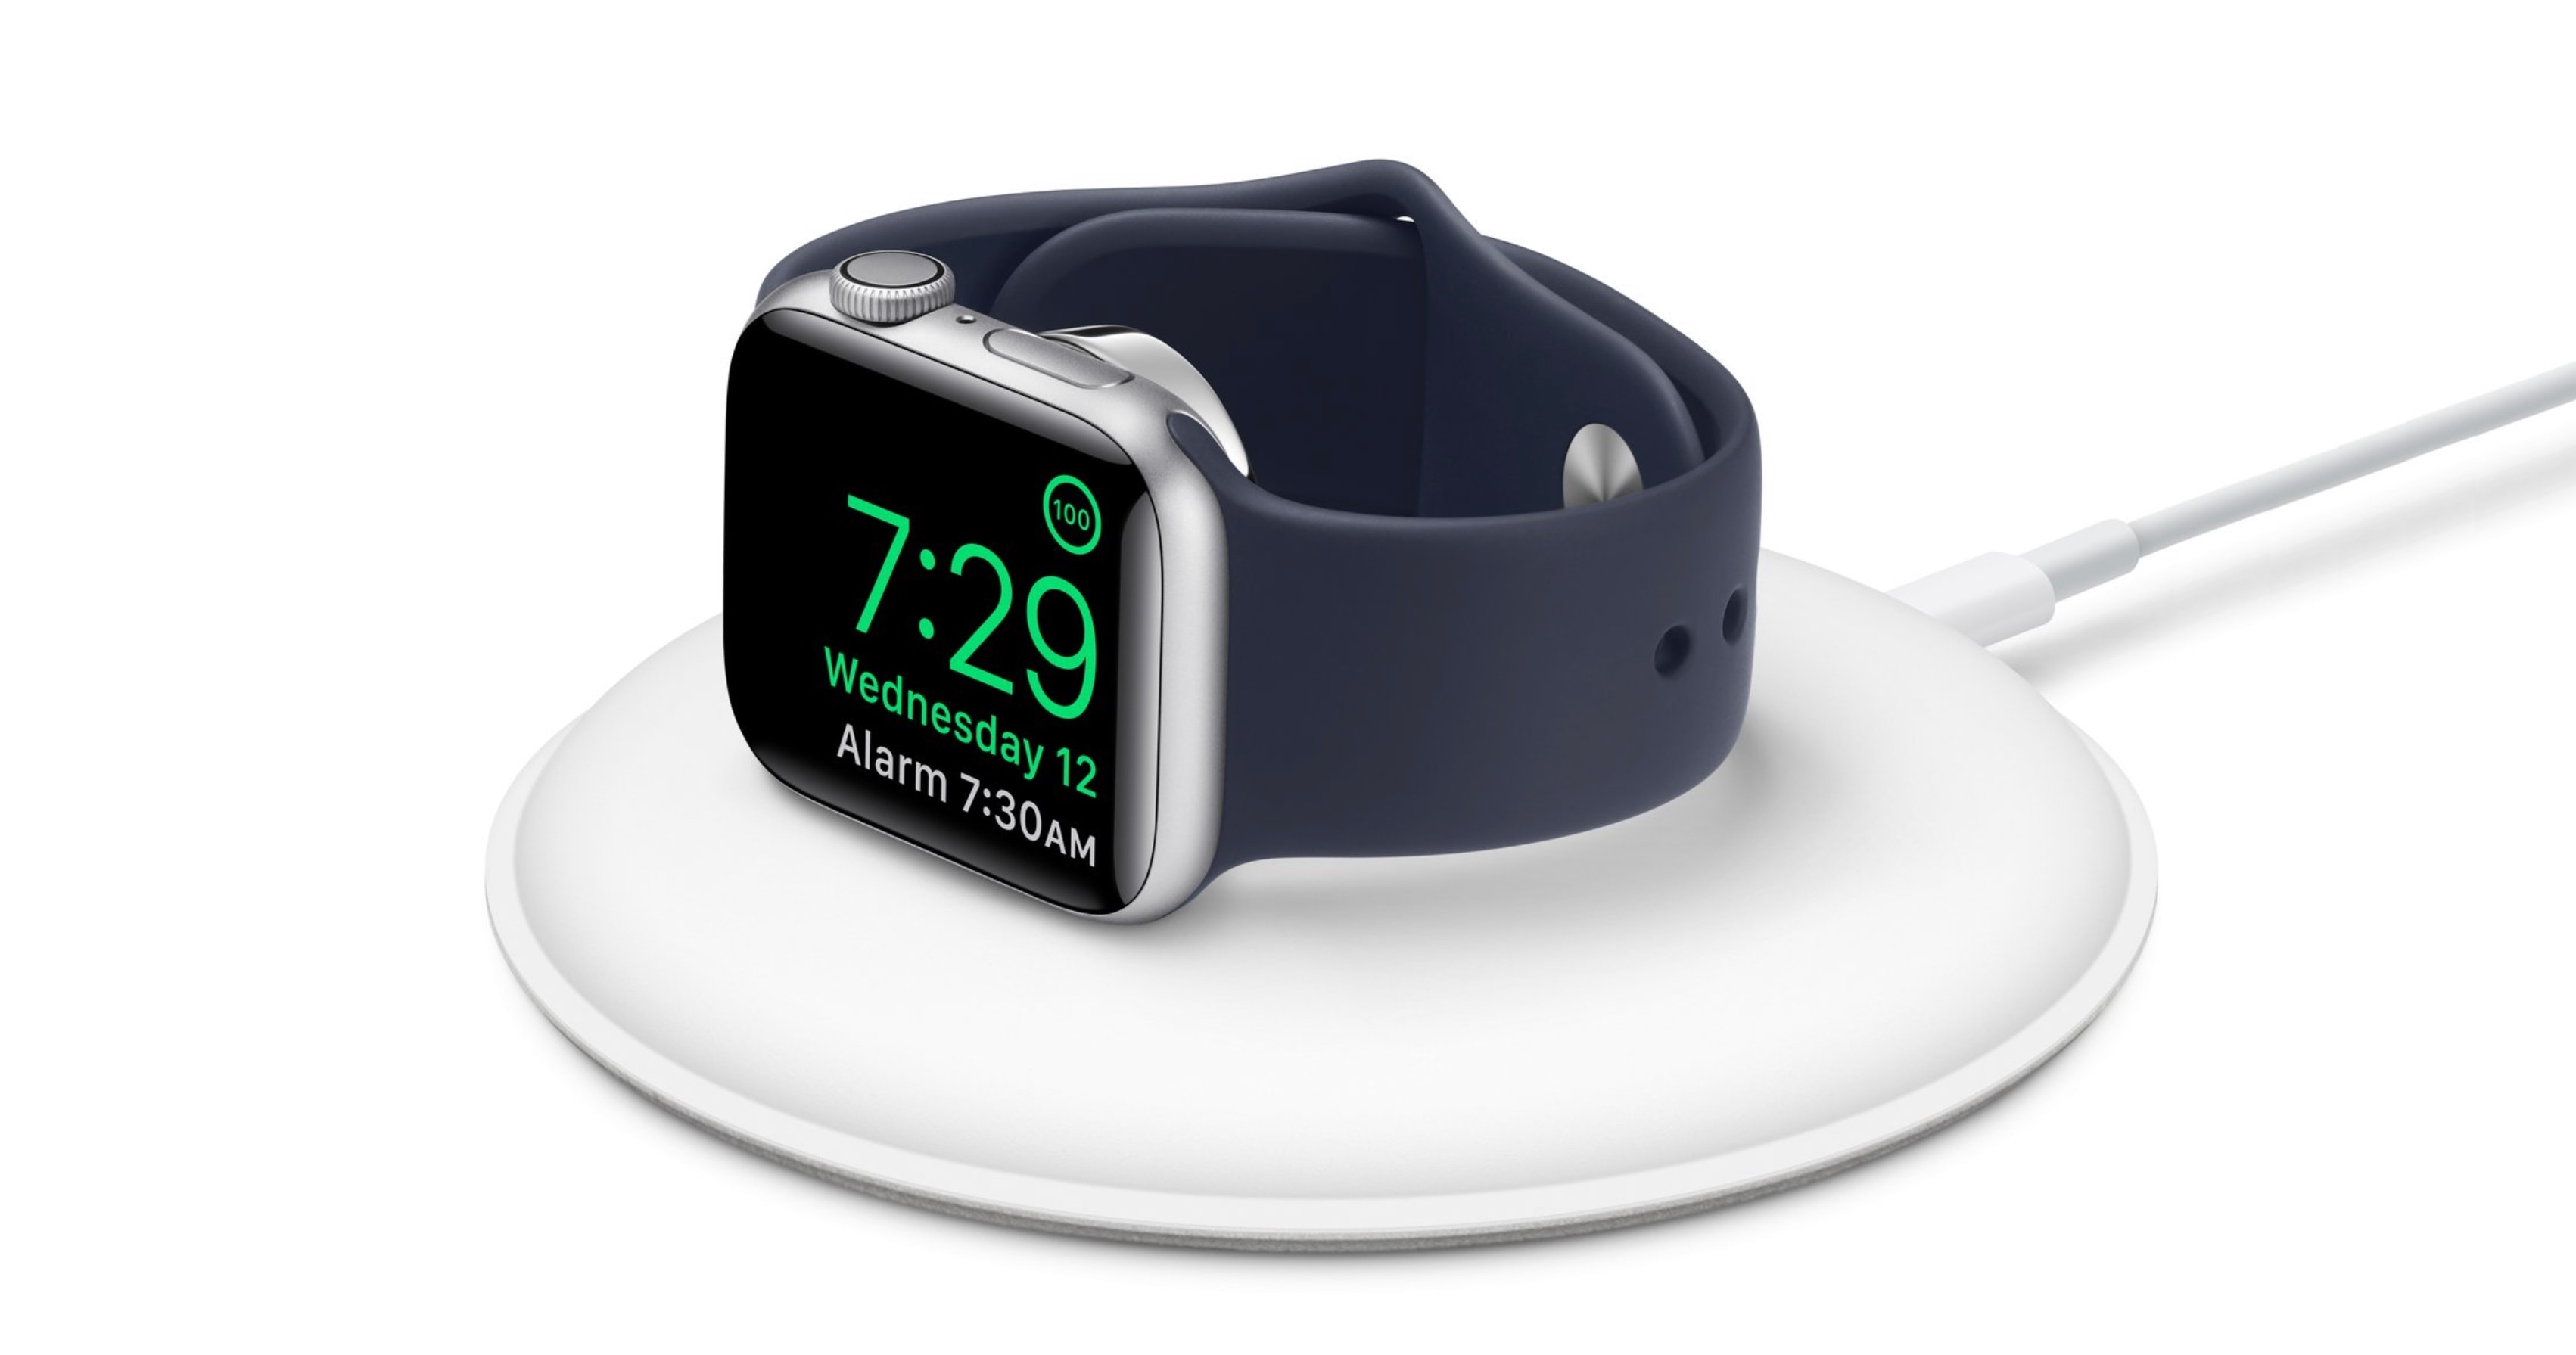 The Apple Watch charging dock just got an update.